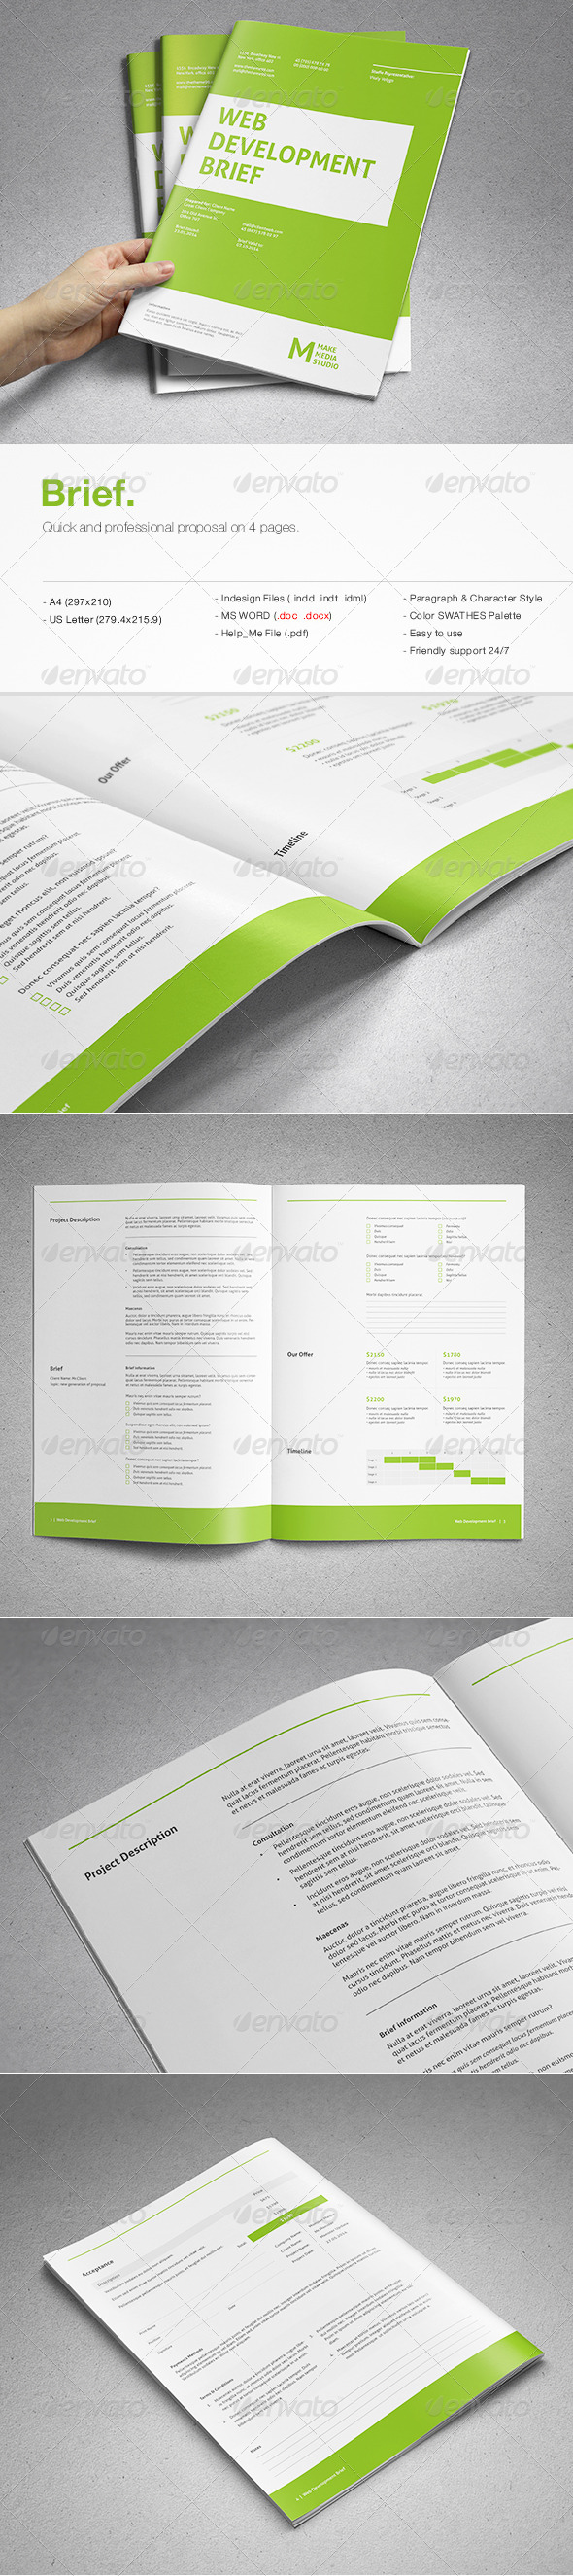 Brief - Proposals & Invoices Stationery